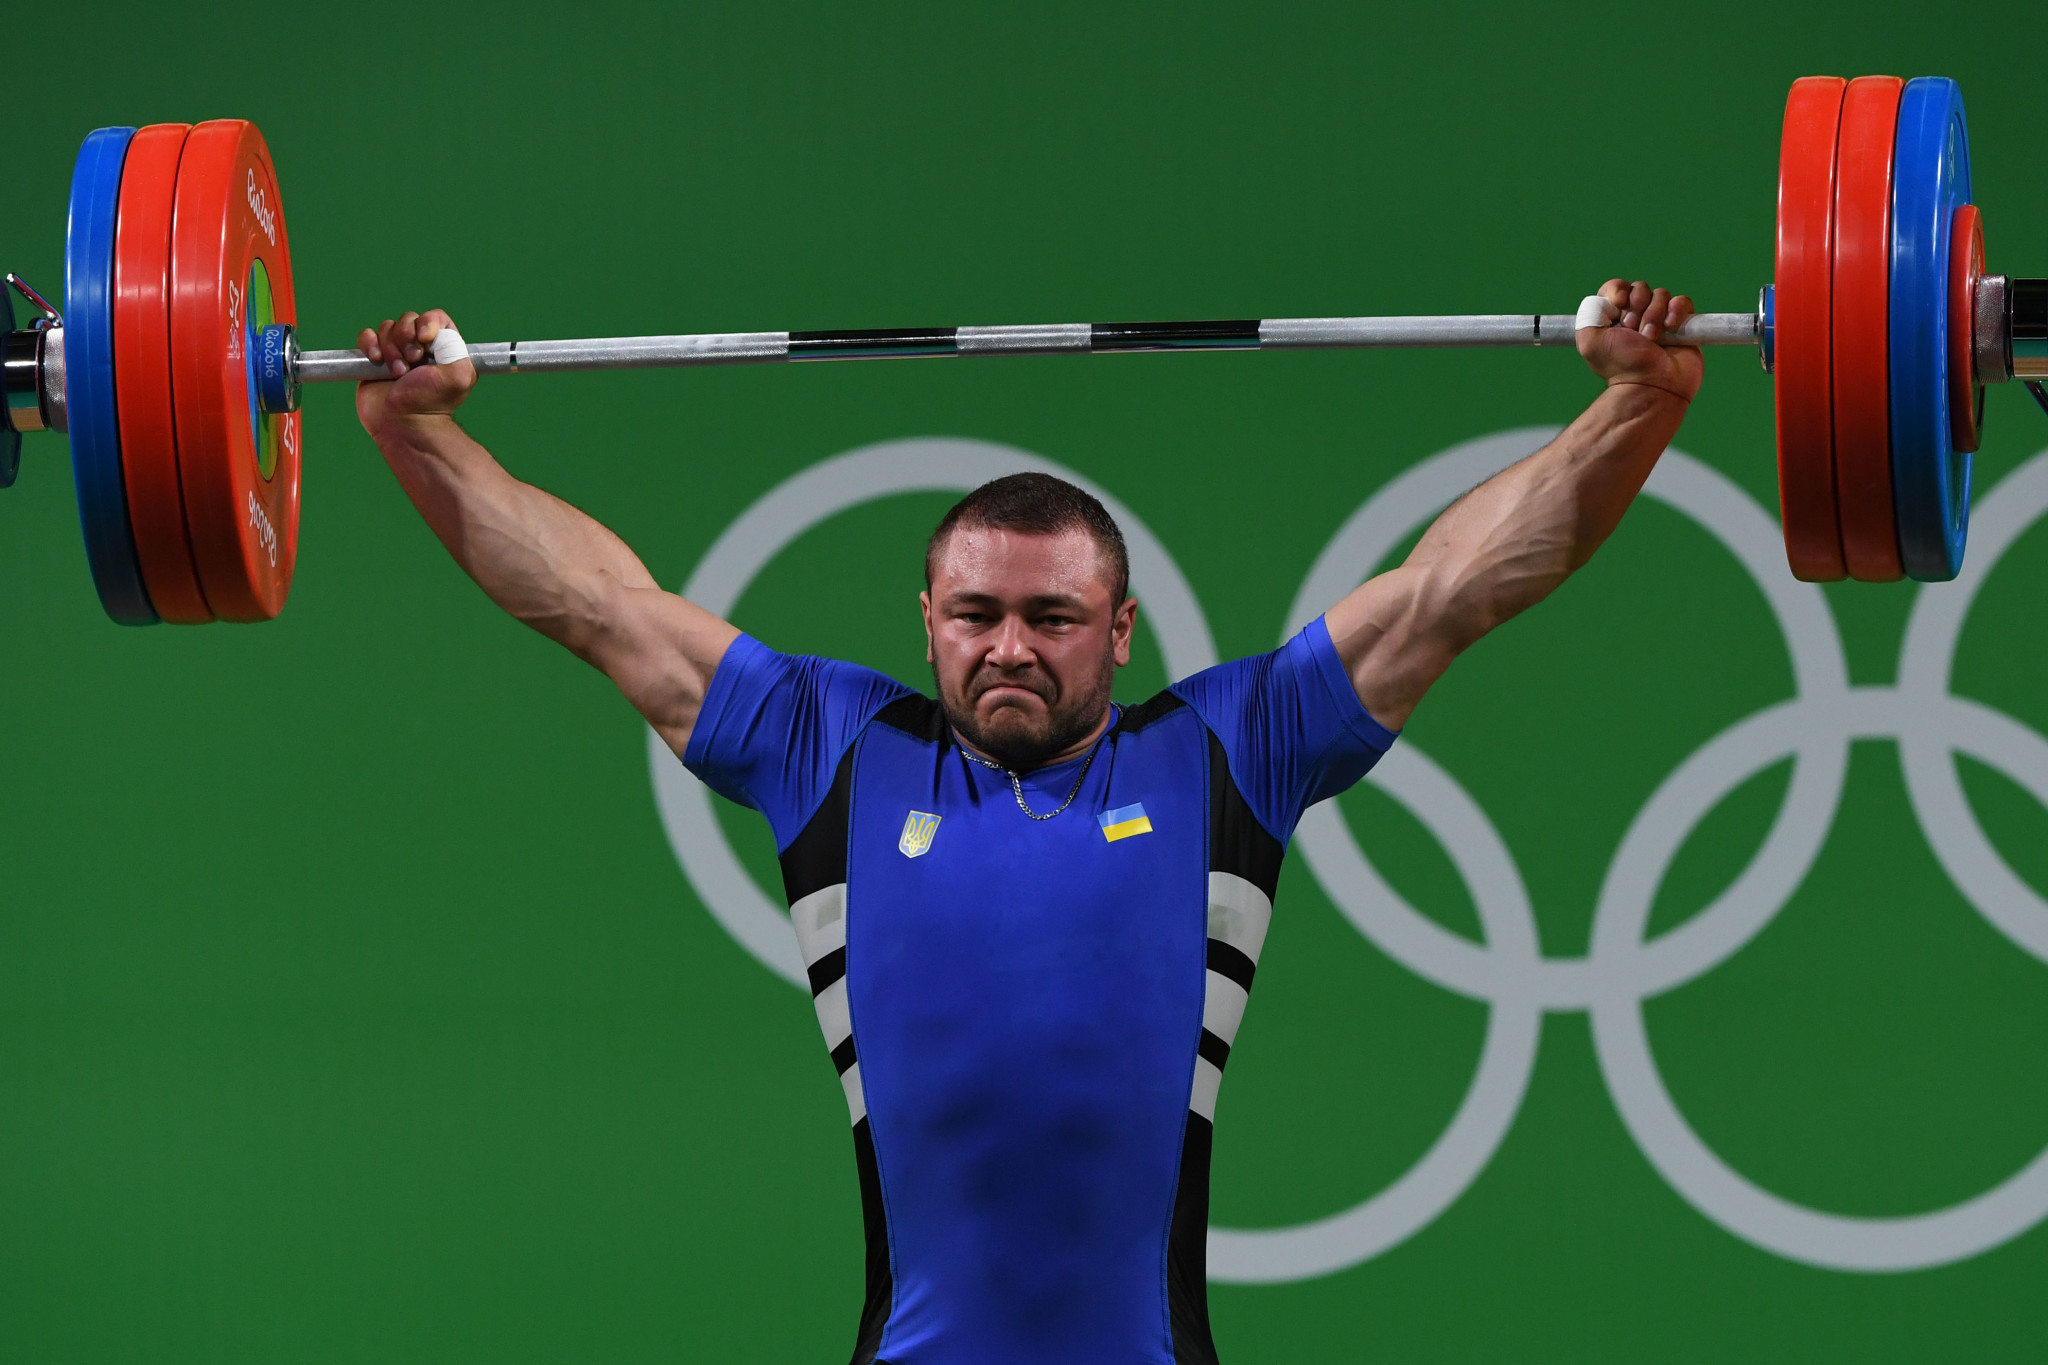 Dmytro Chumak competed at Rio 2016 and was a medal contender for the upcoming Tokyo 2020 Olympics ©Getty Images